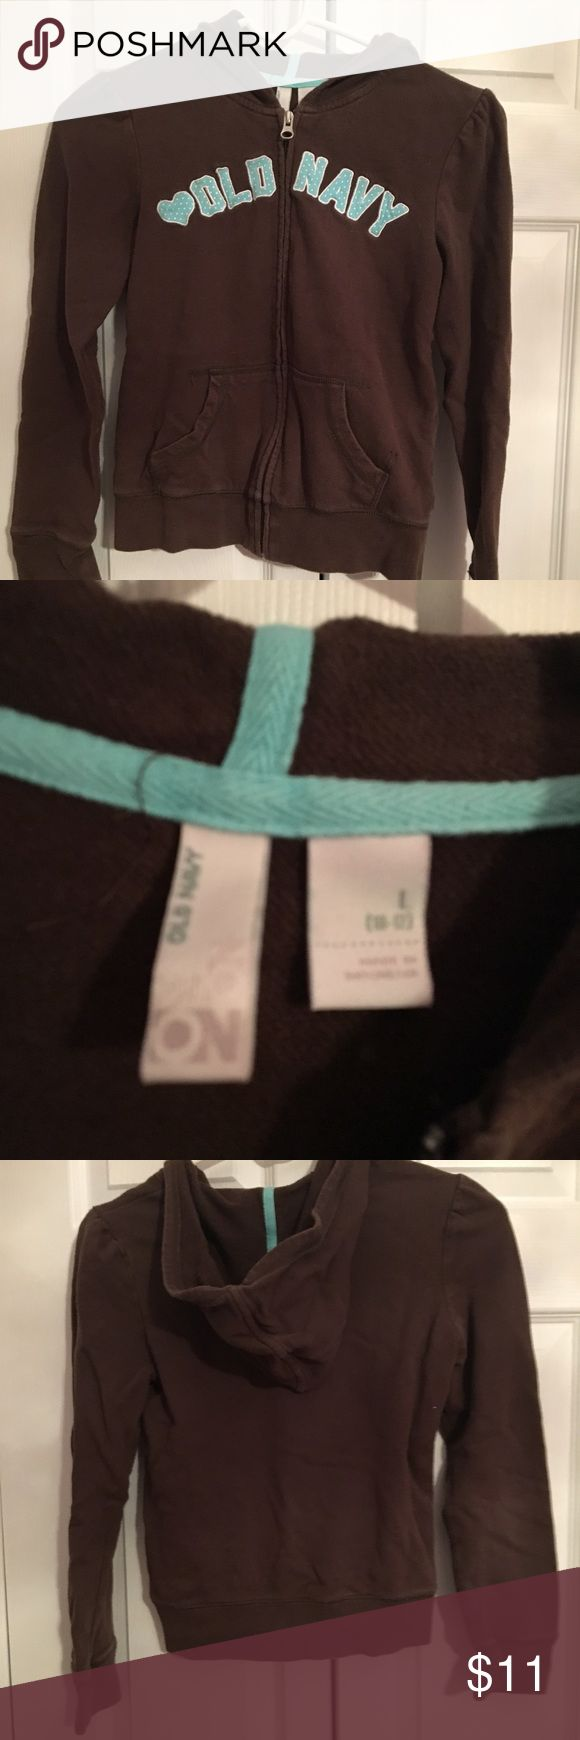 OLD MAVY LOGO ZIP-UP HOODIE Brown Old Navy zip up hoodies with a white blue and white polka dot logo. $11 or best offer. Old Navy Shirts & Tops Sweatshirts & Hoodies